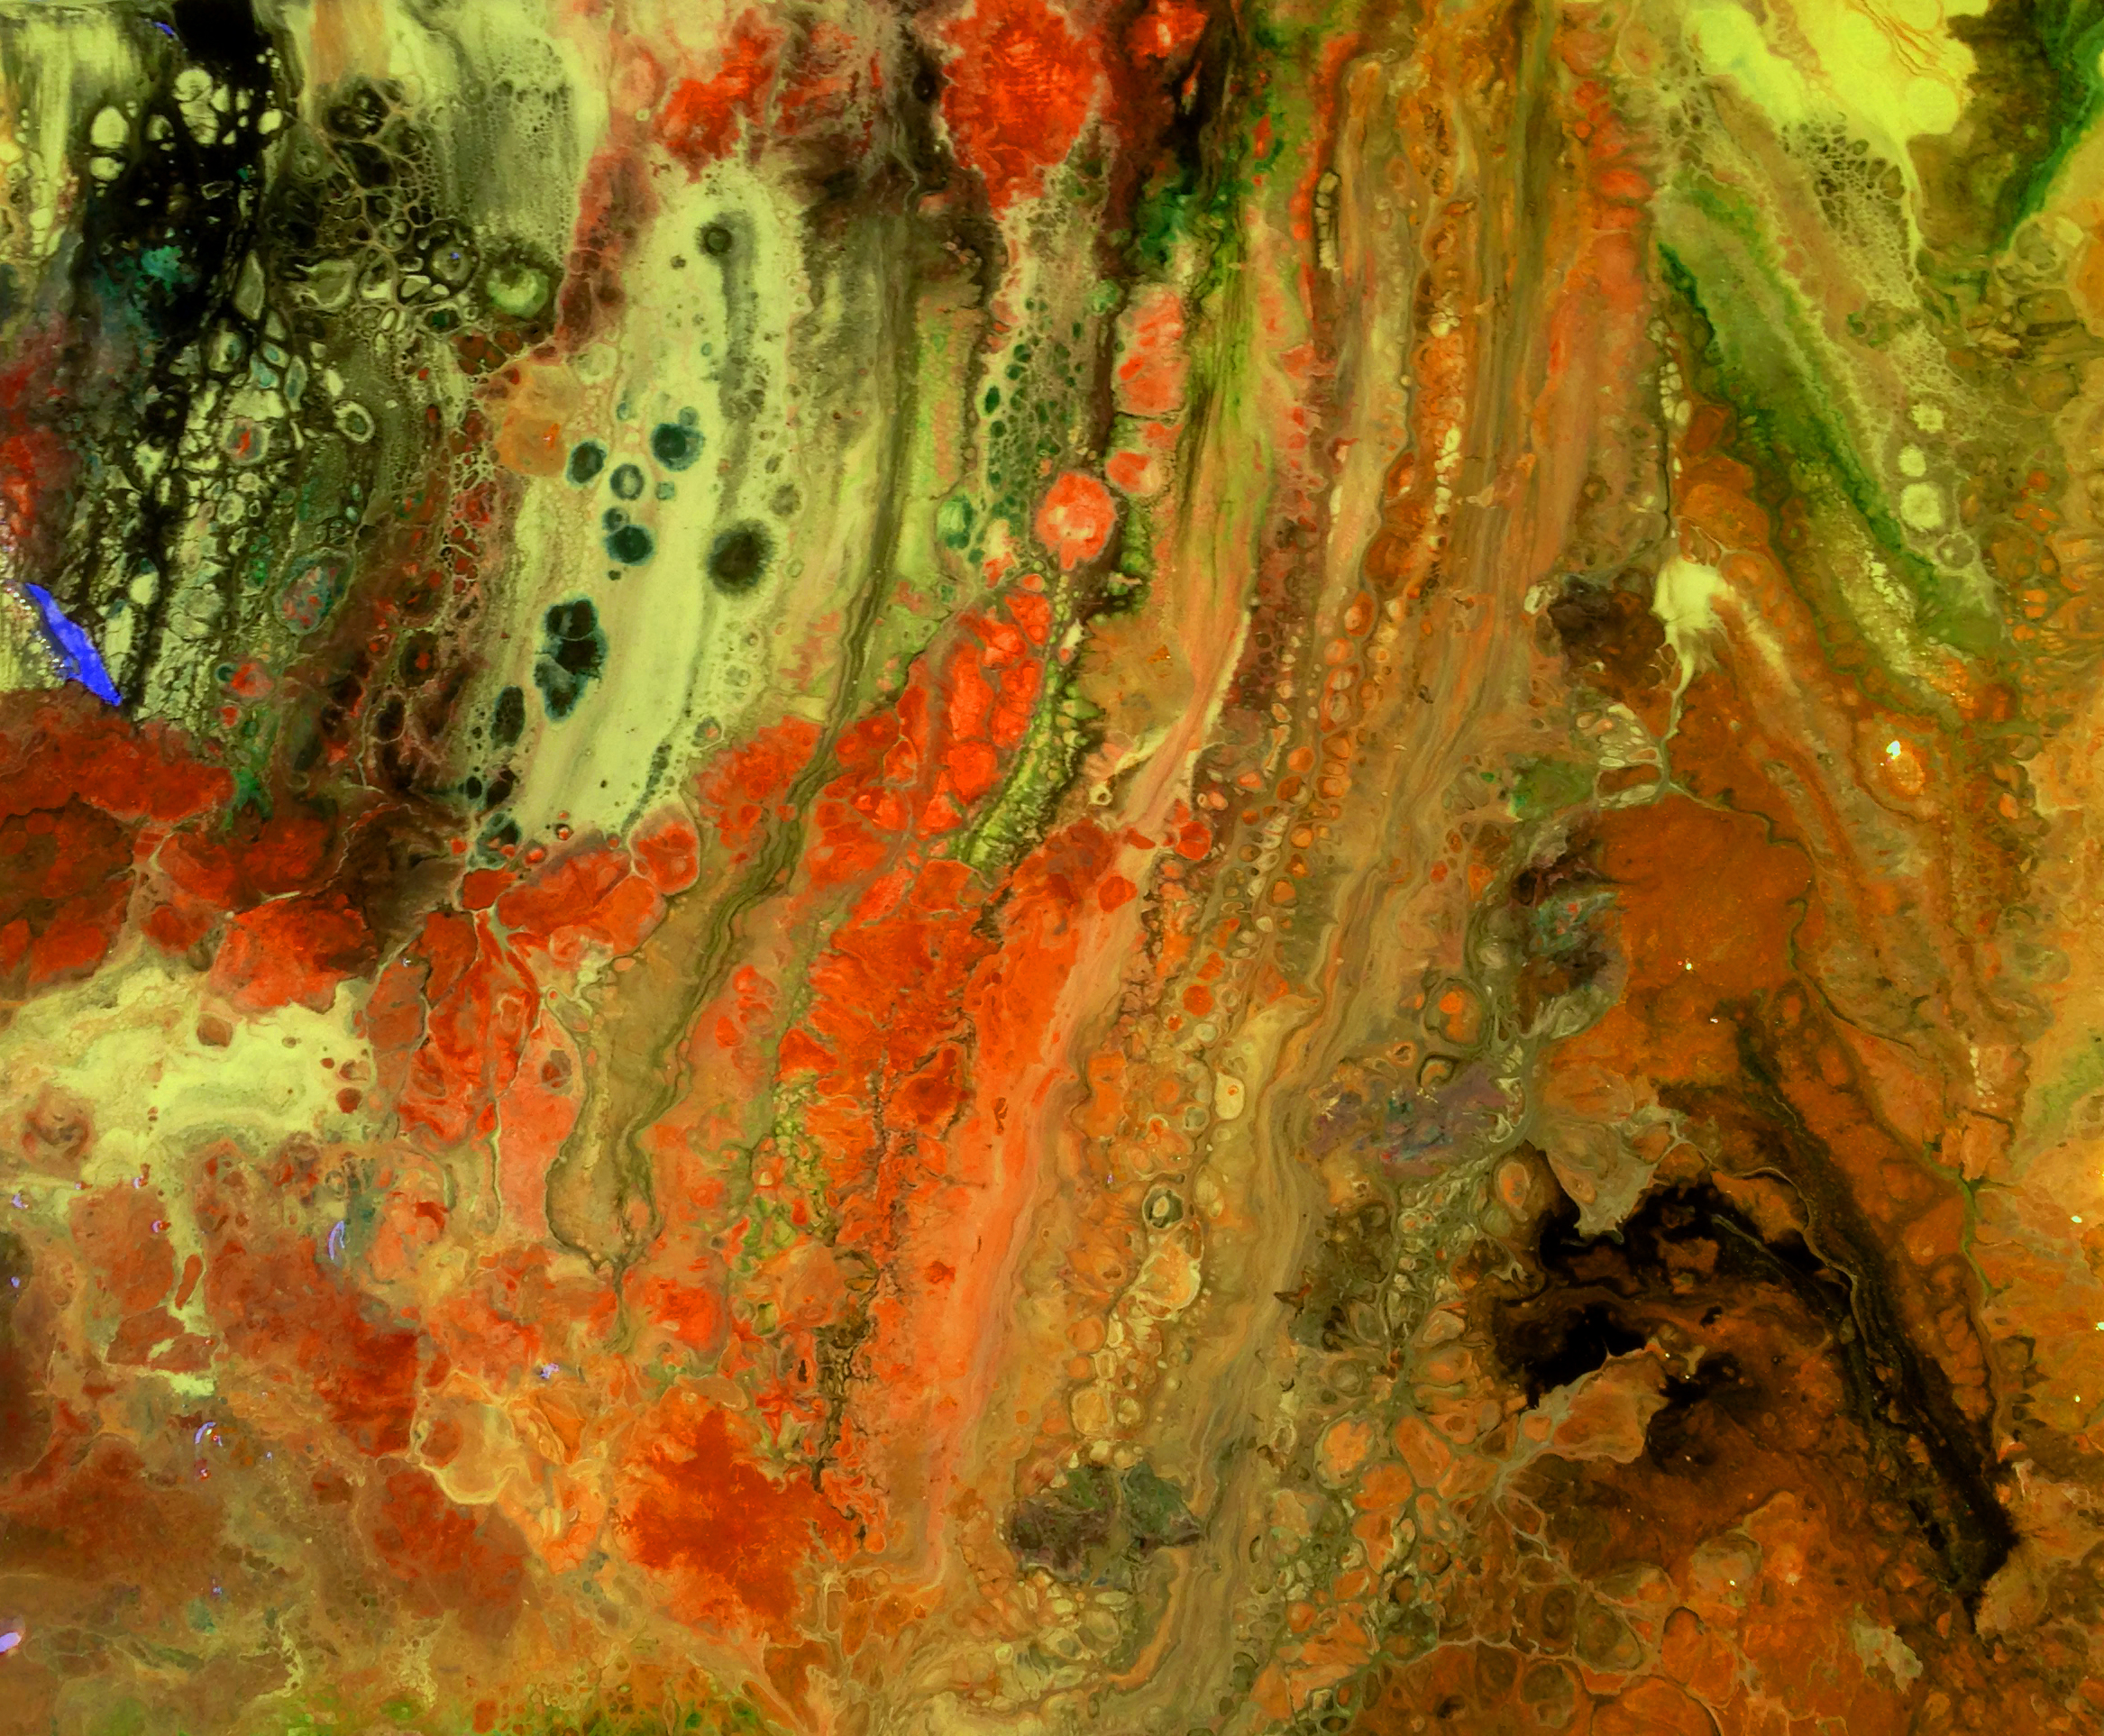 """Biopsy"" Acrylic art pour by Lahle Wolfe Ehrlich; October 10, 2017."